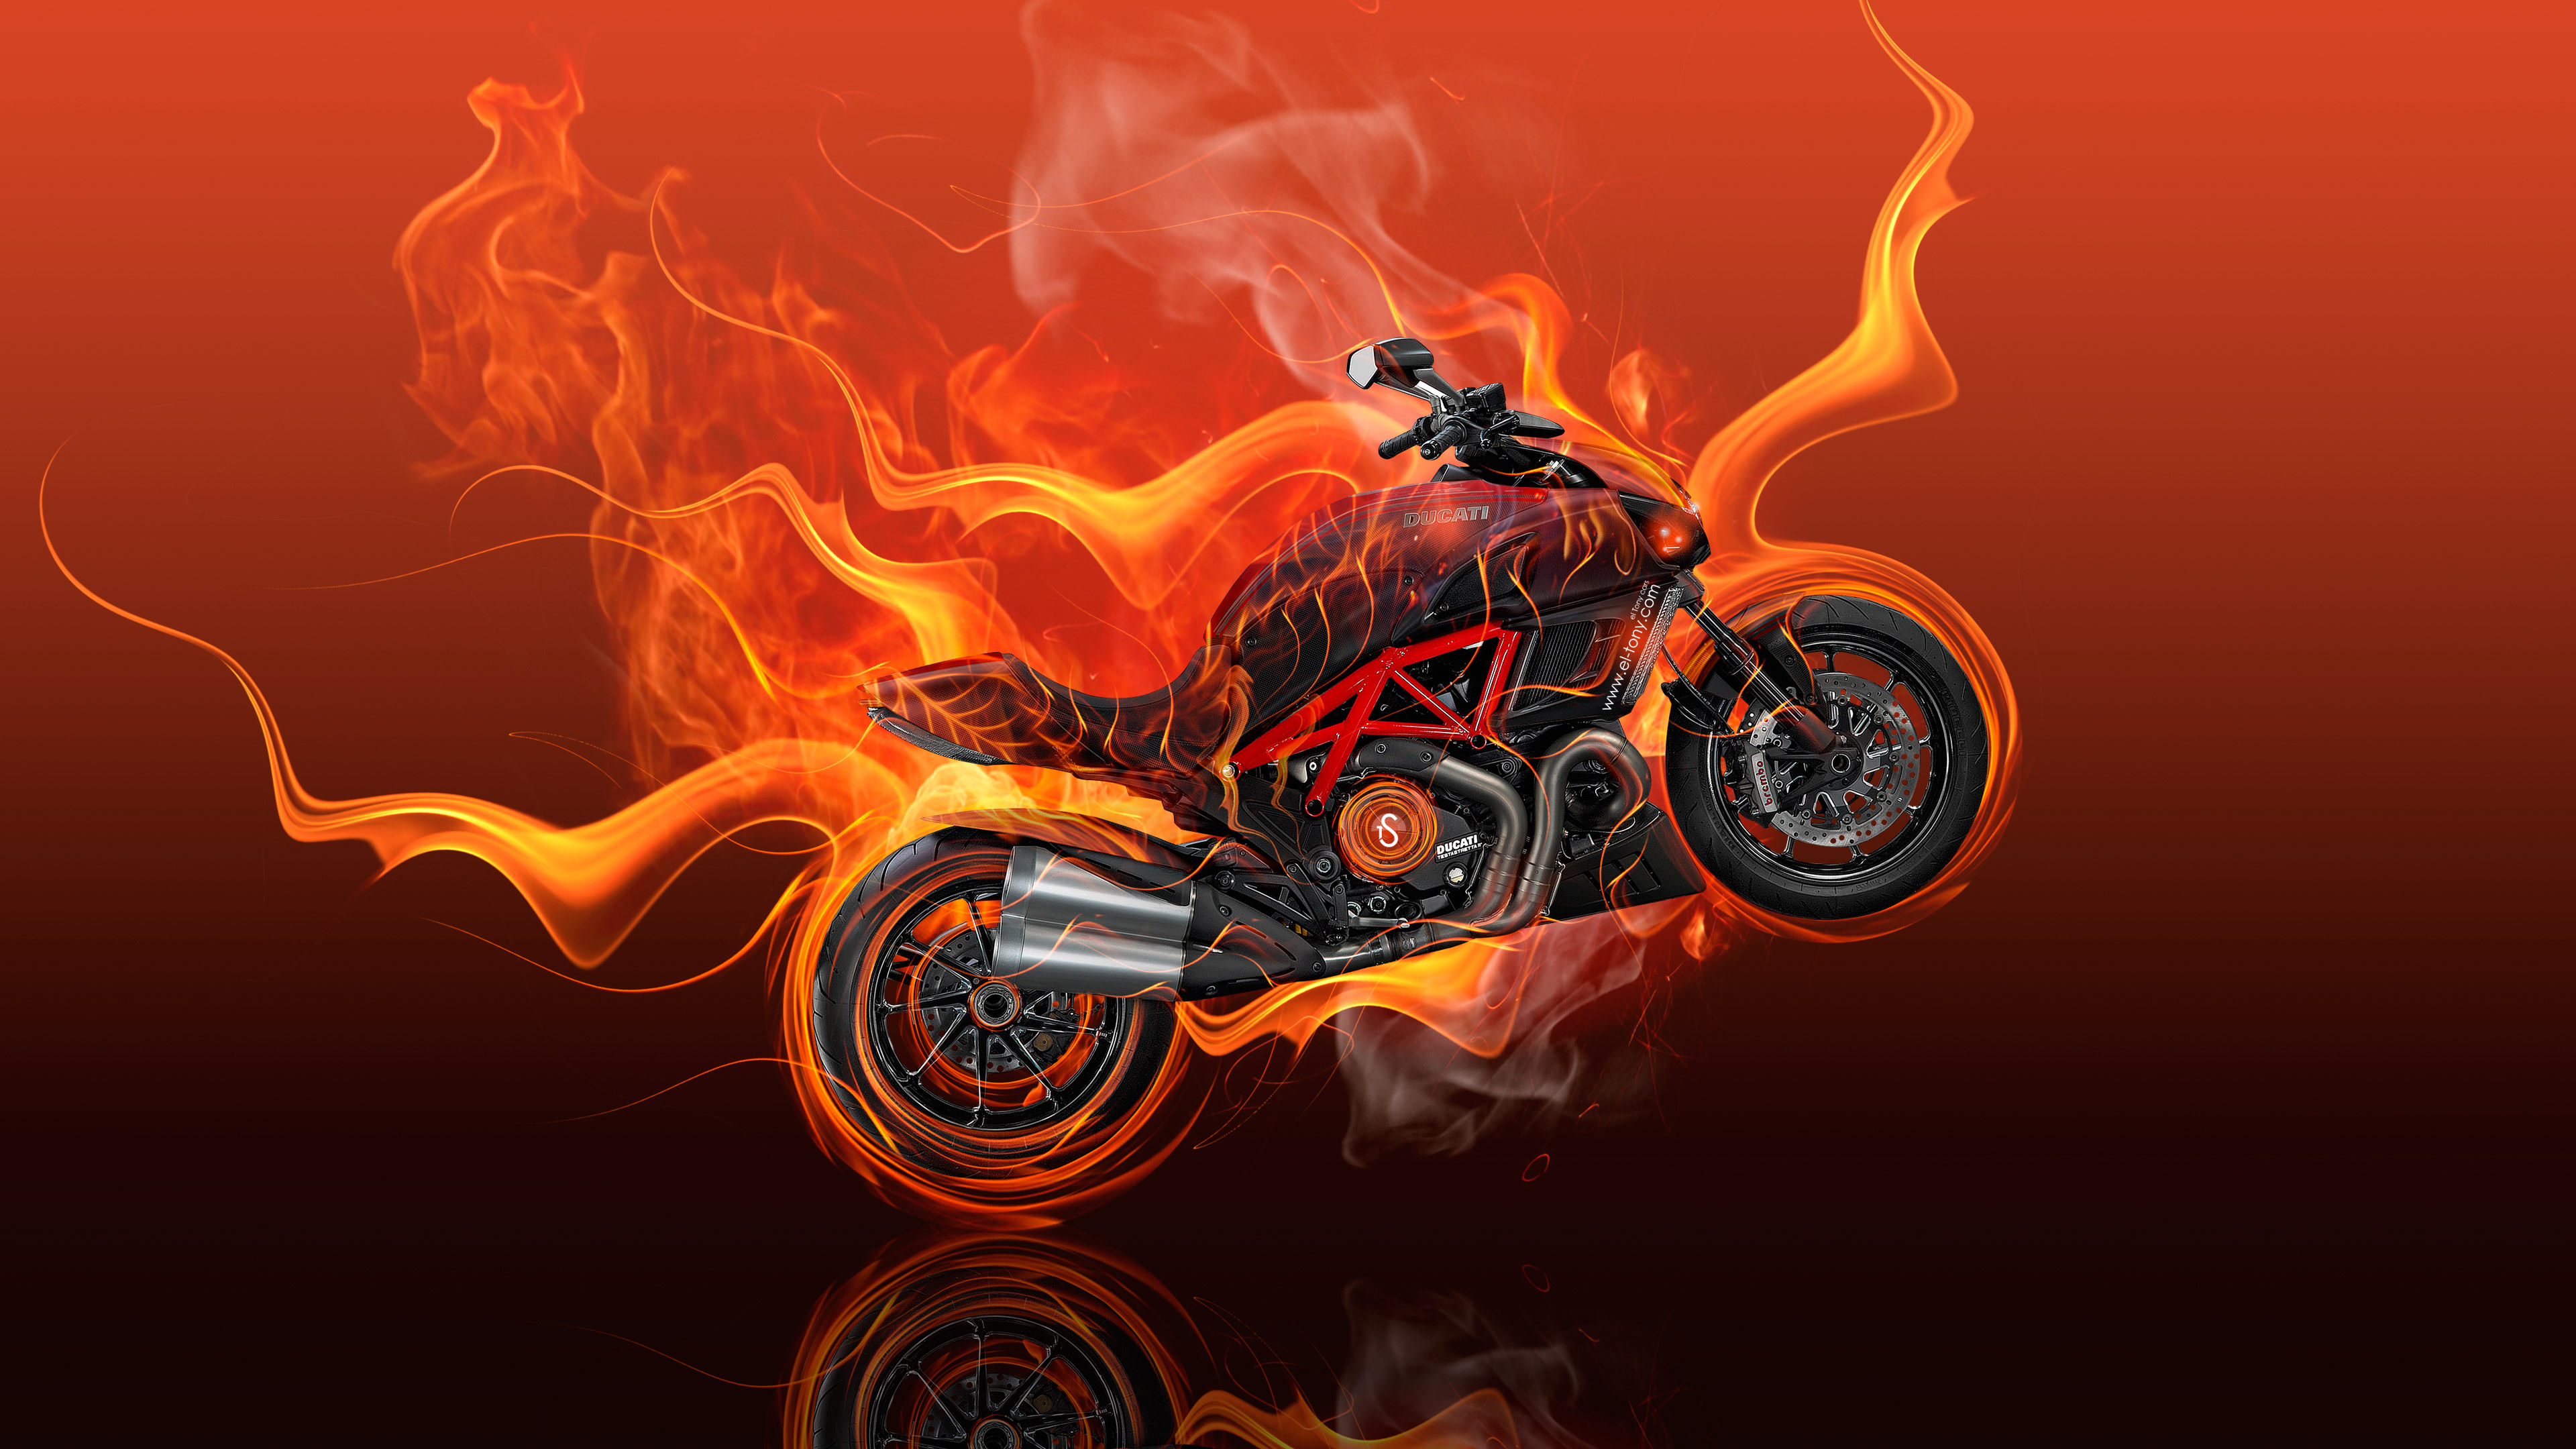 Moto Ducati Diavel Flame Hd Artist 4k Wallpapers Images